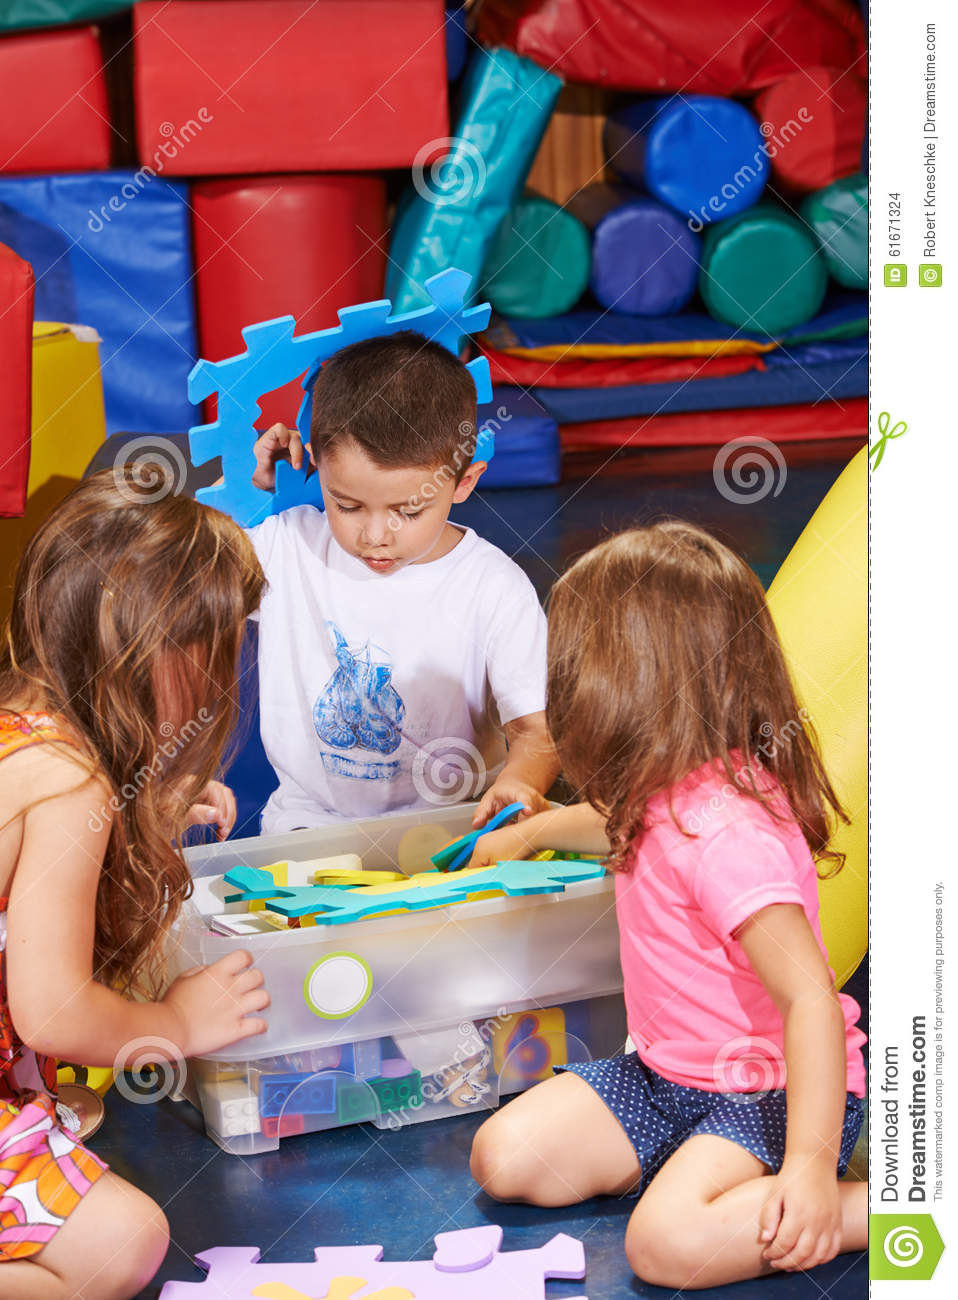 Children Cleaning Up Toys In Box Stock Photo - Image: 61671324